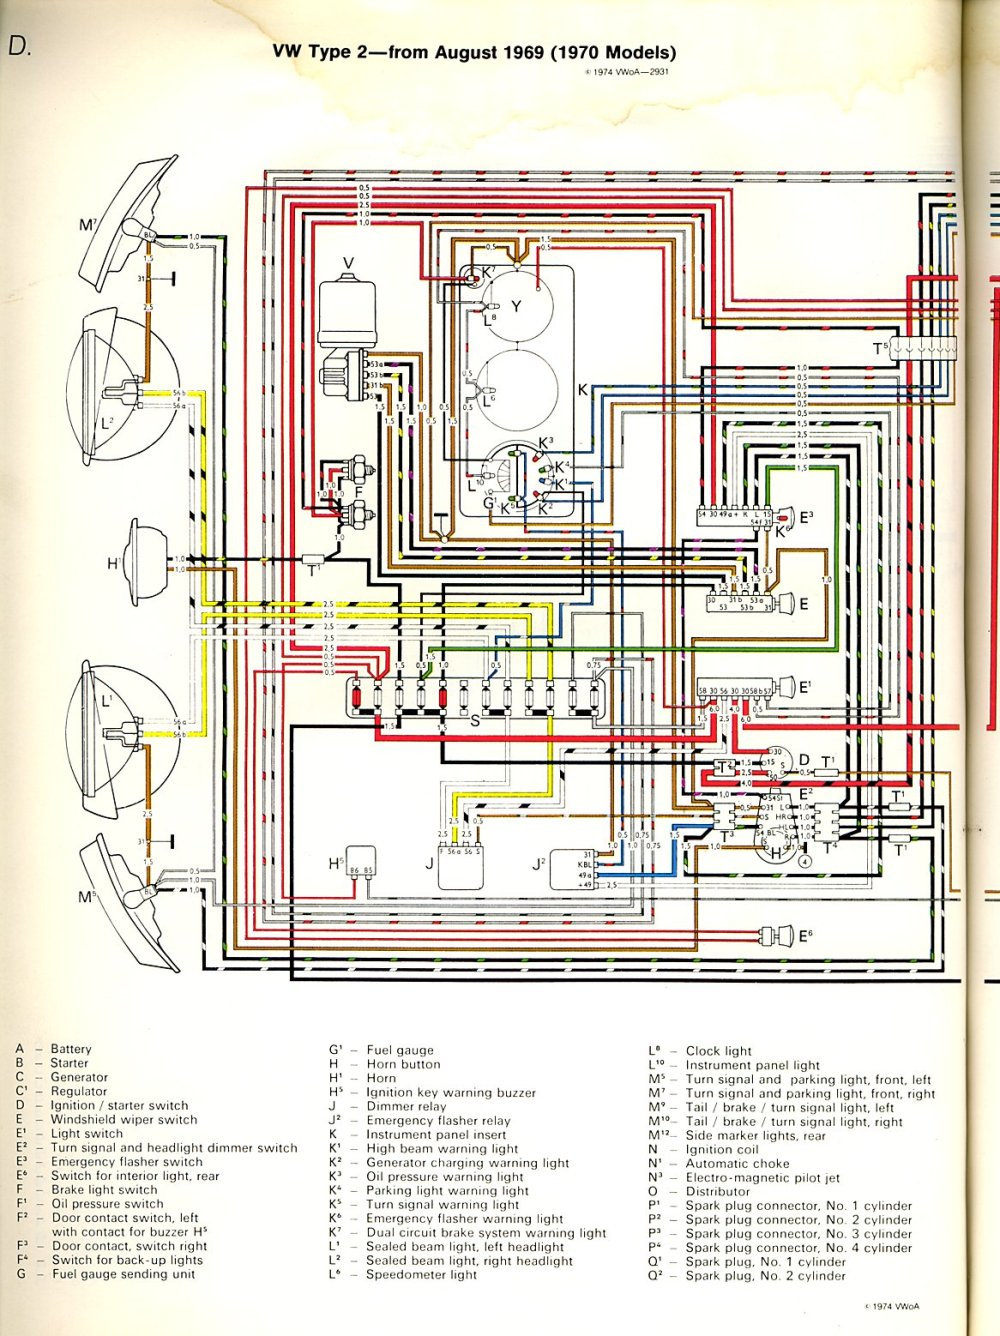 medium resolution of thesamba com type 2 wiring diagrams rh thesamba com vw karmann ghia wiring schematic vw karmann